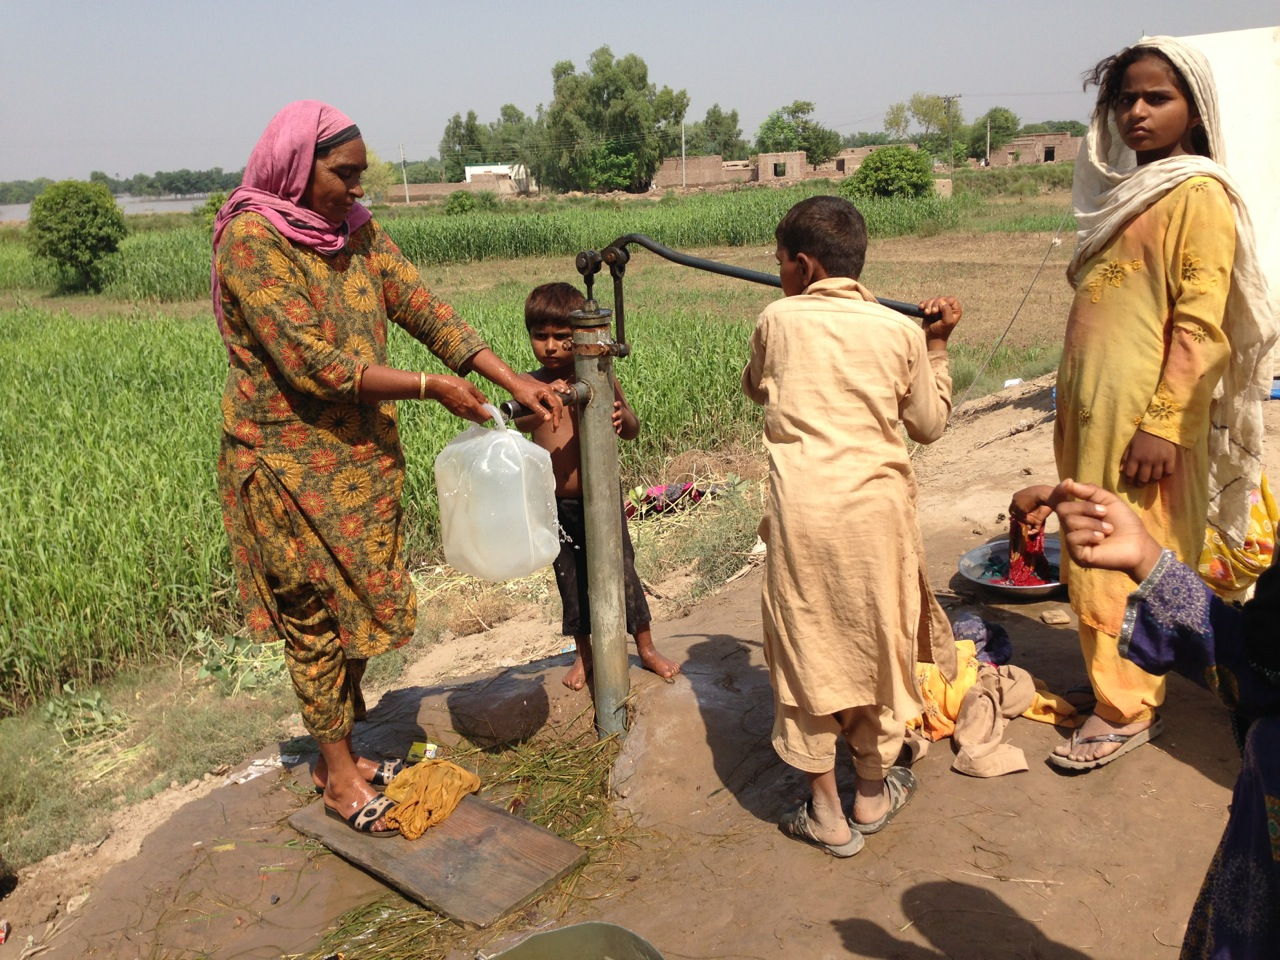 Water hand pump installed through the funding of the Friends of Roots